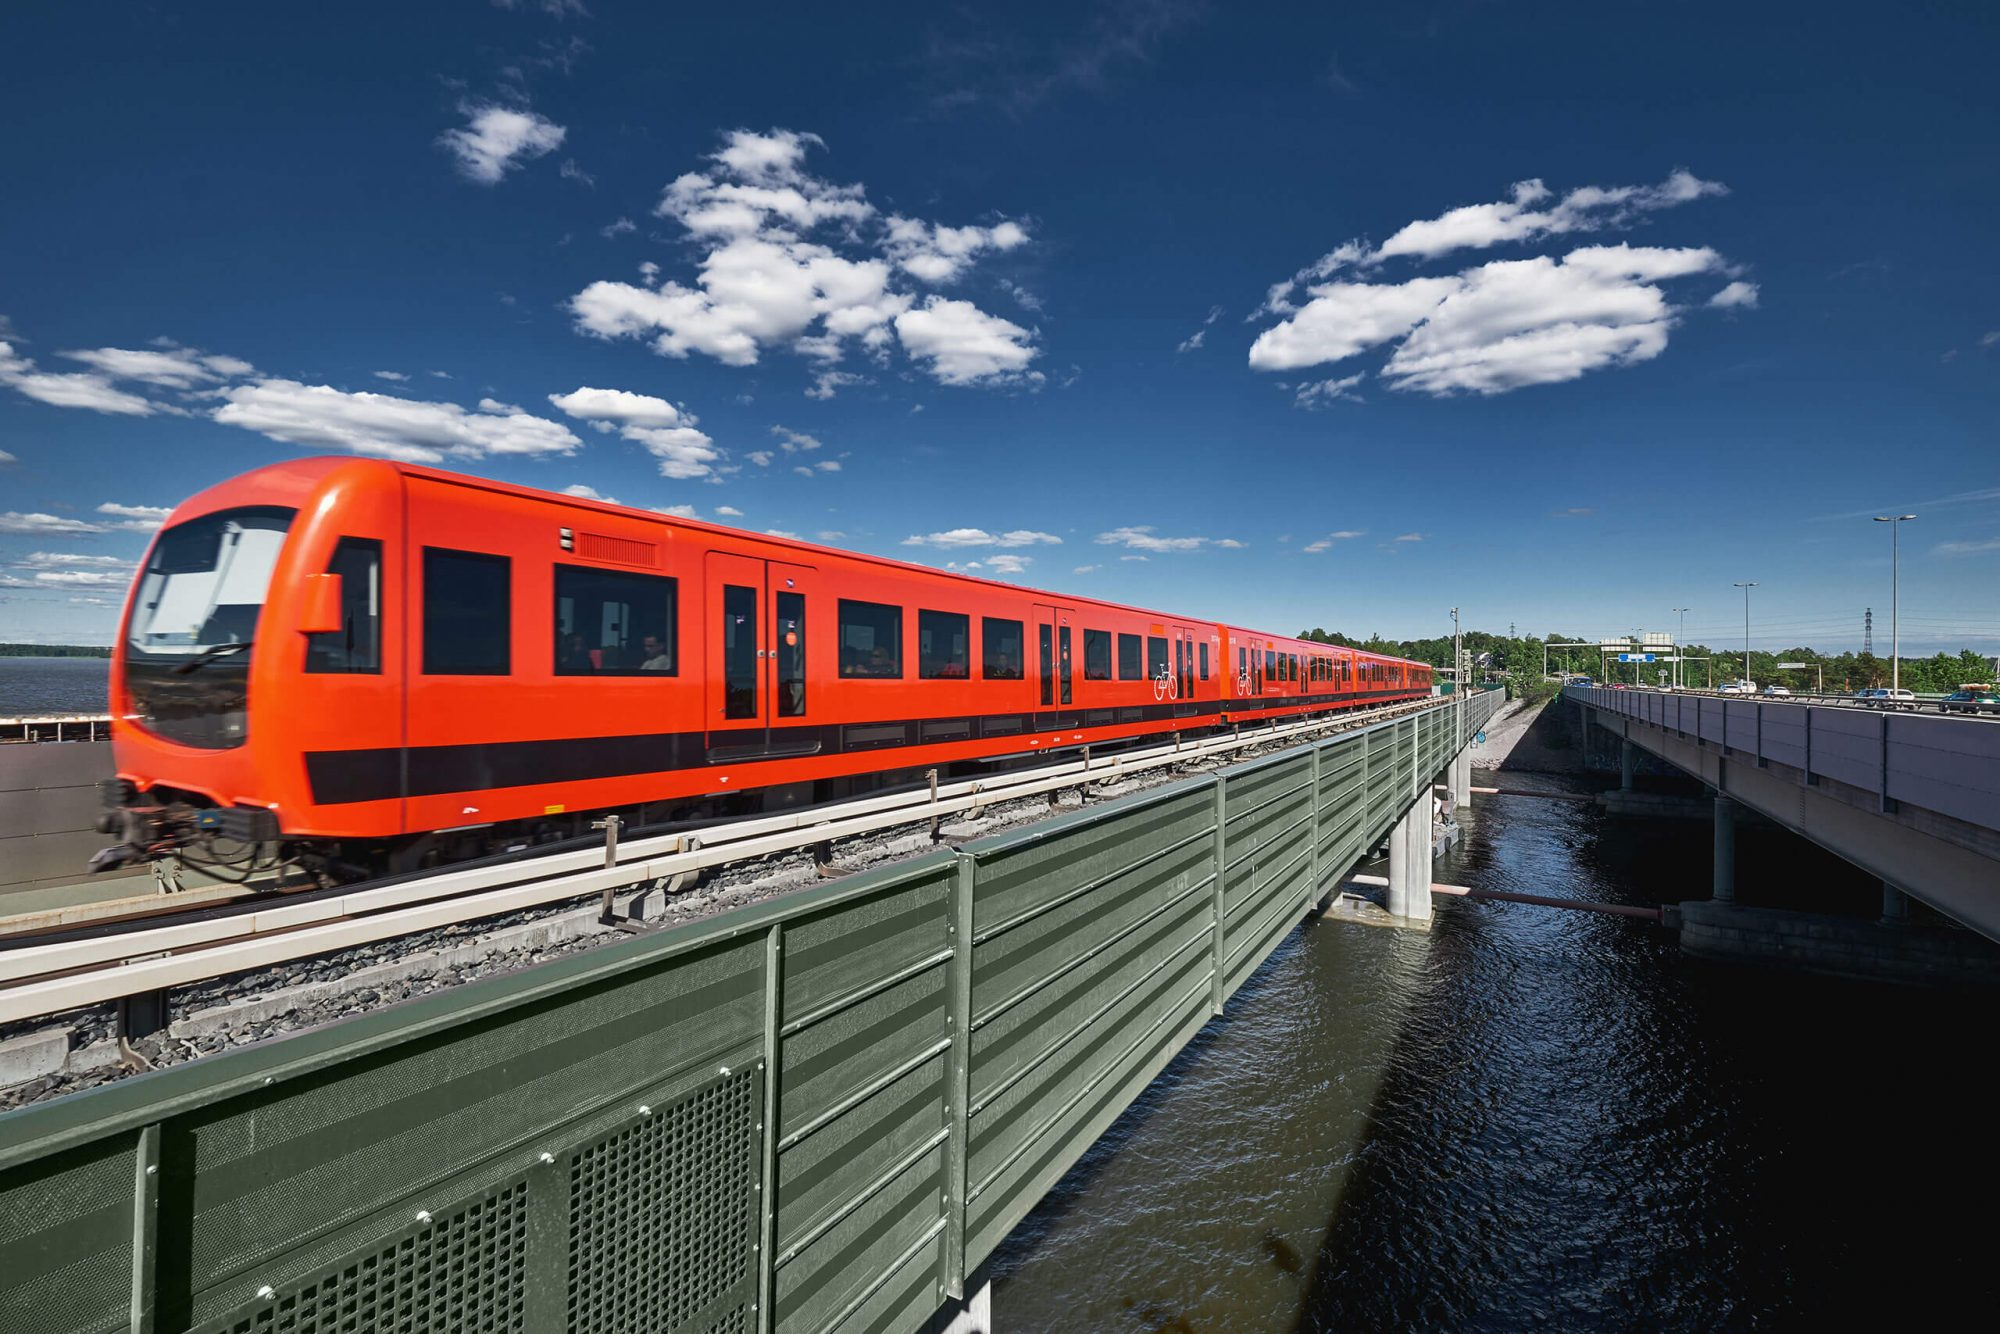 Metro Train on Bridge